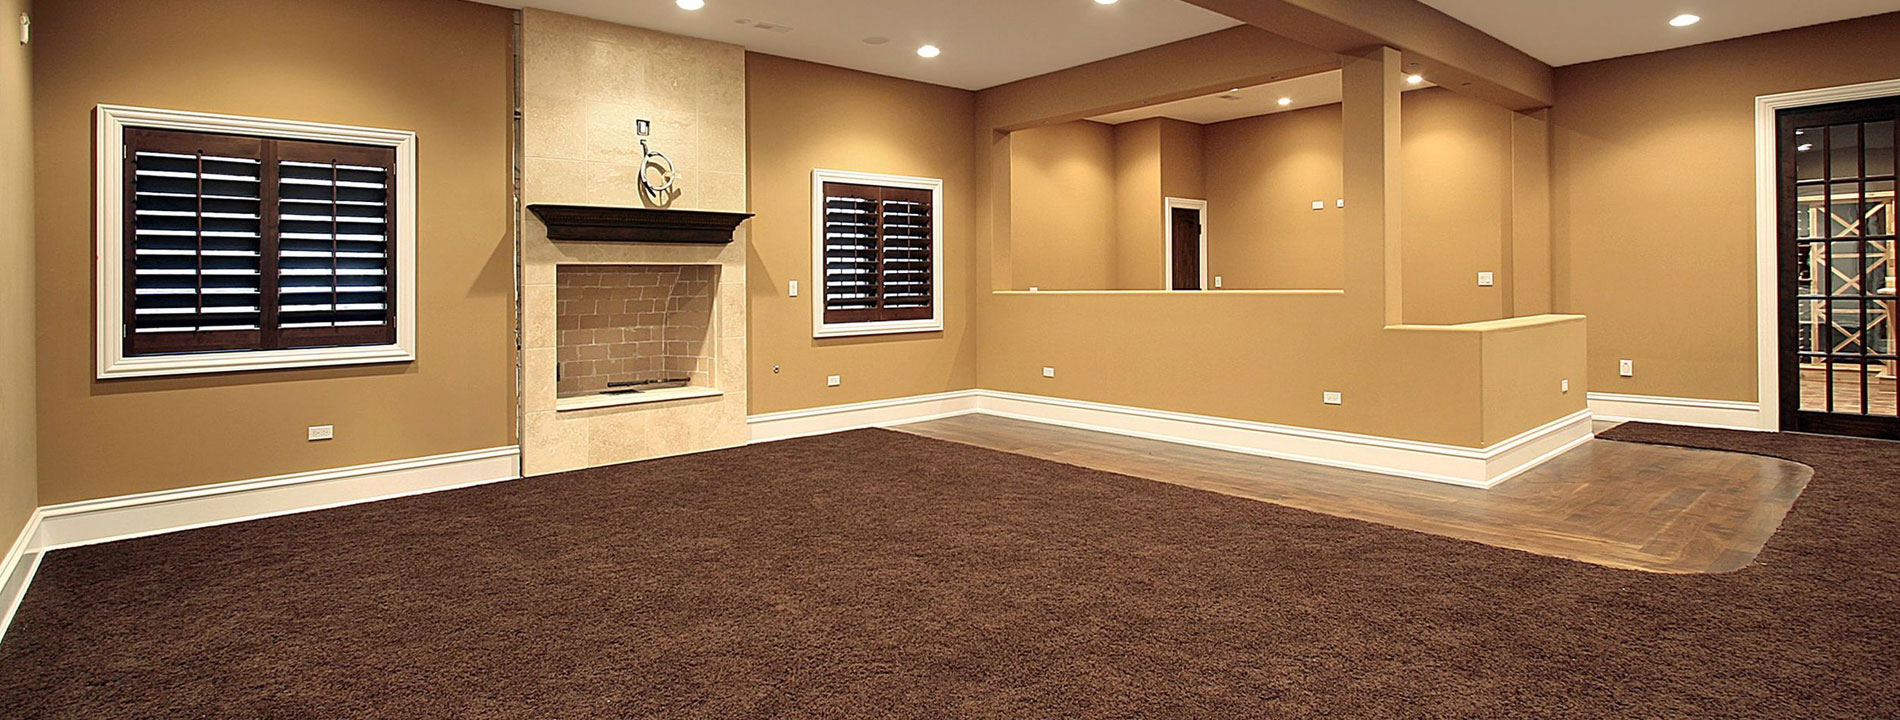 Next Day Floors Category Results Next Day Carpet And